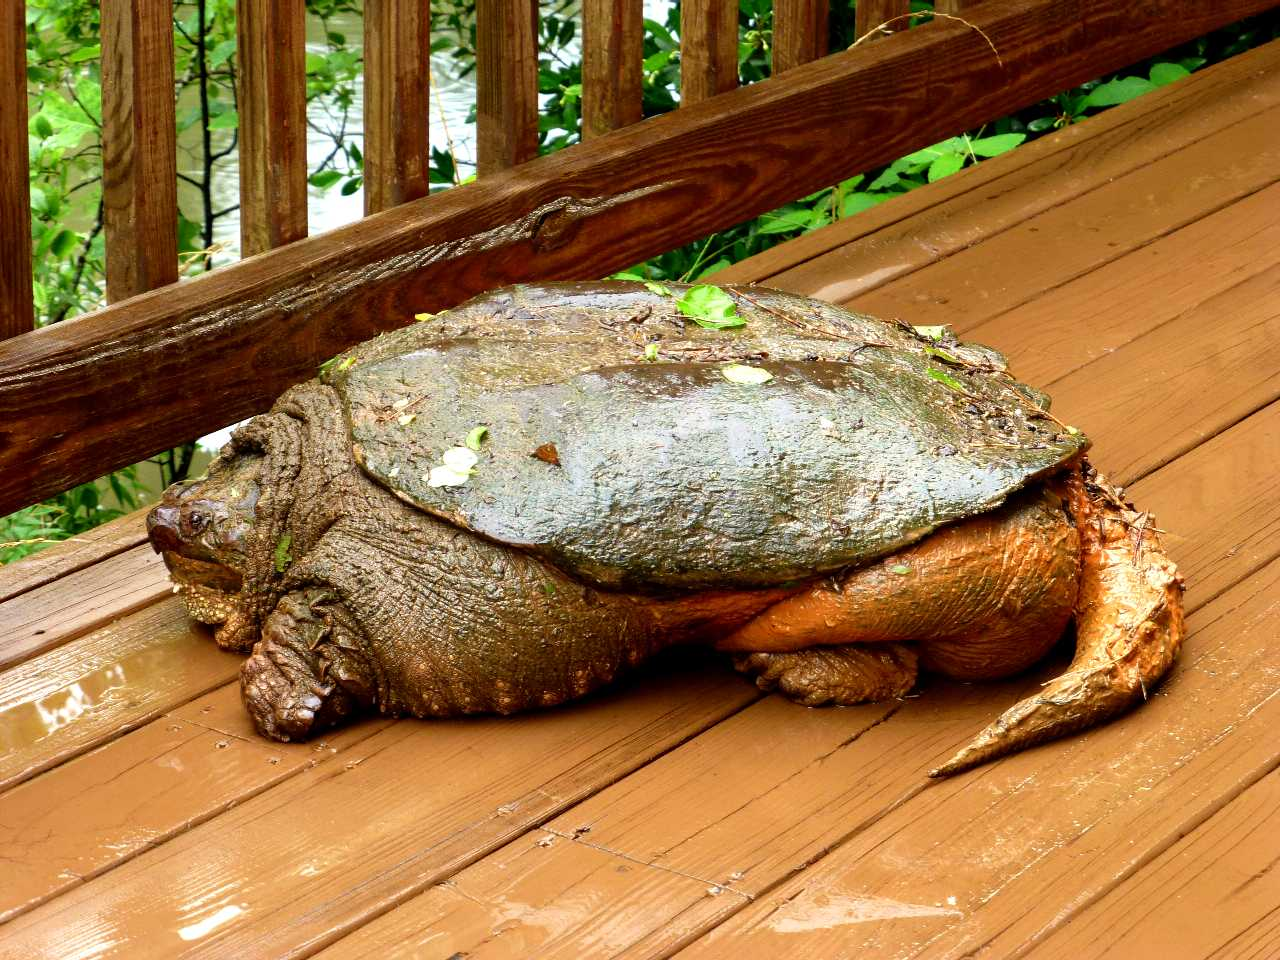 Our Wise Old Snapping Turtle